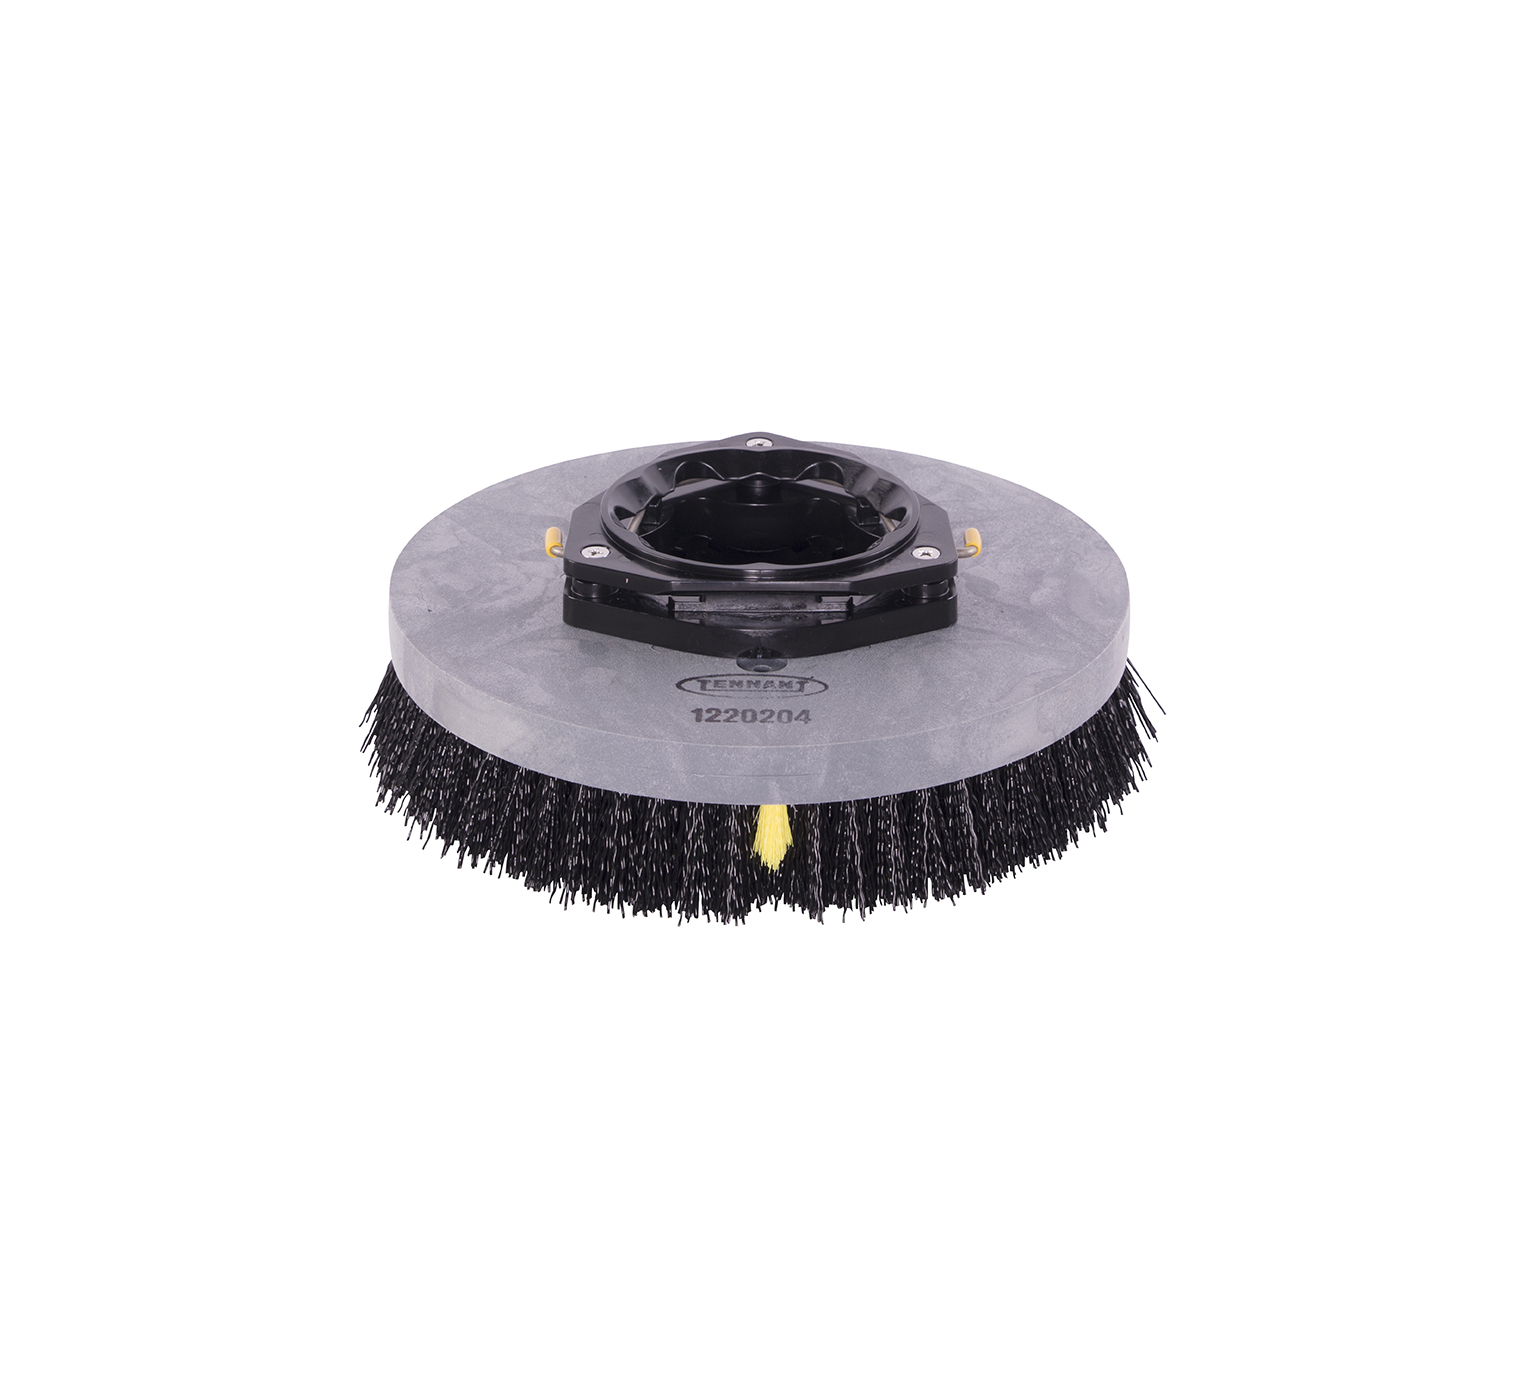 1220204 Polypropylene Disk Scrub Brush Assembly – 12 in / 304.8 mm alt 1